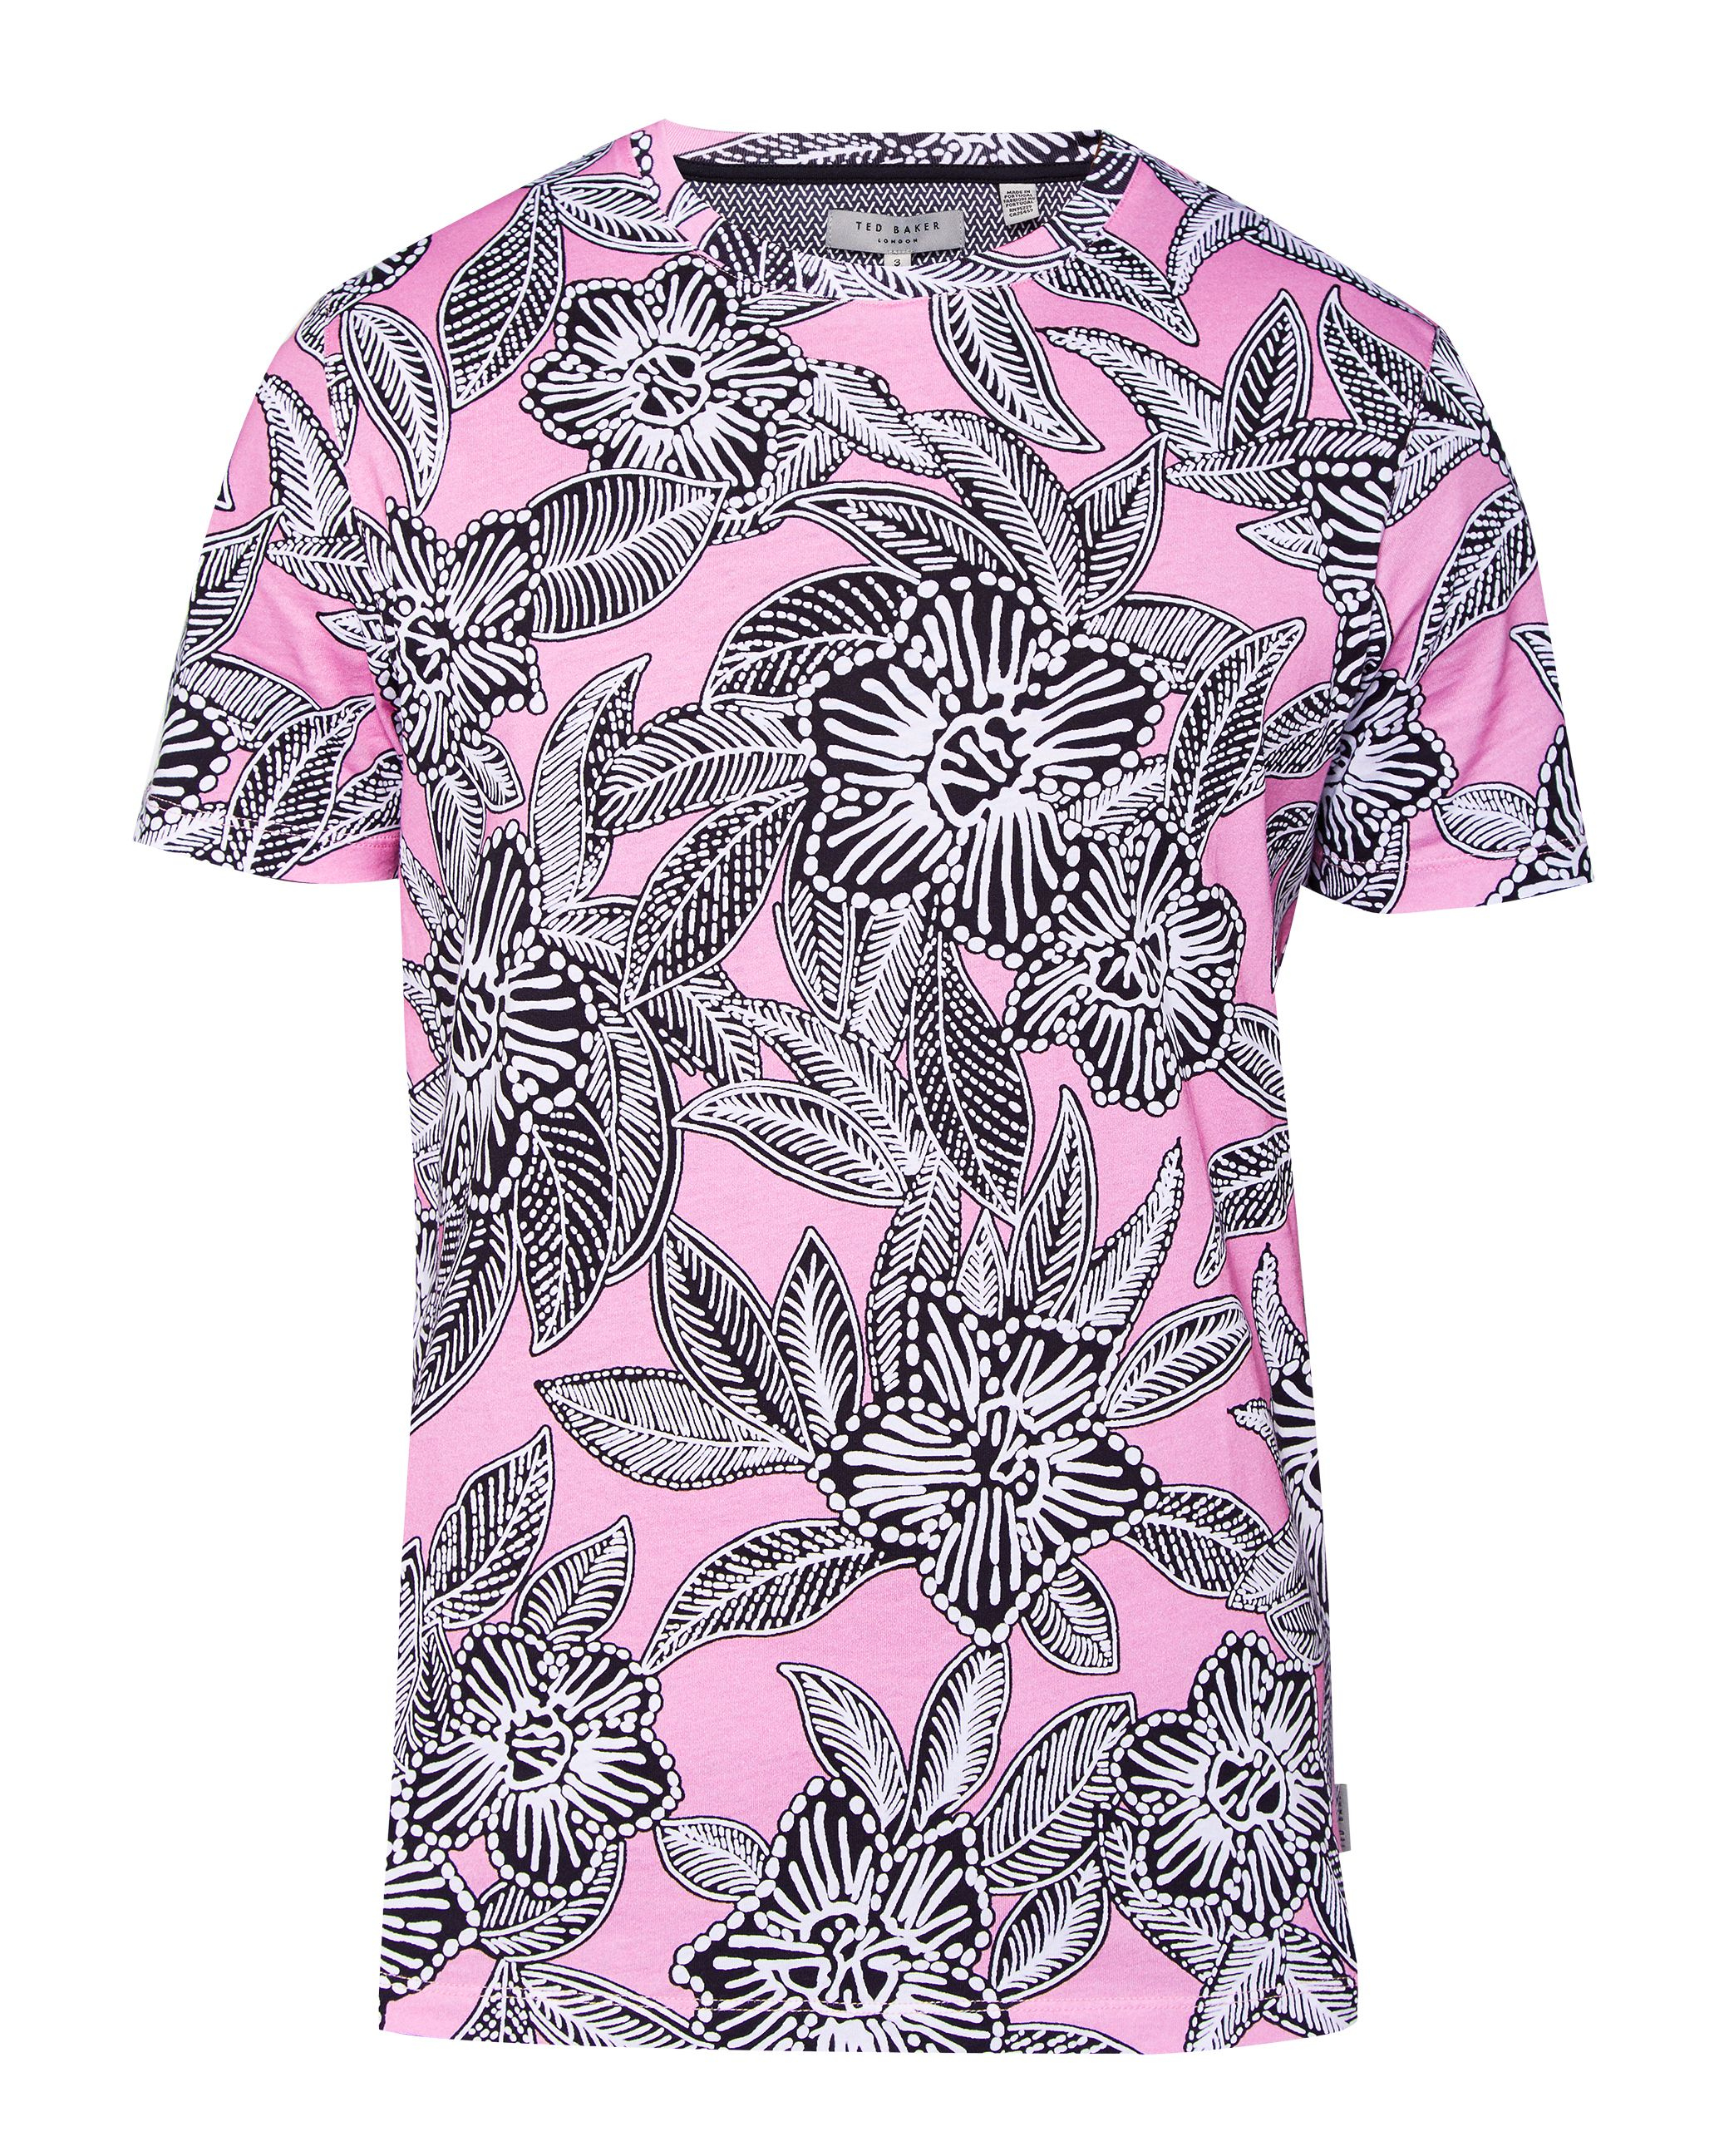 Men's Ted Baker Niosi floral cotton t-shirt, Pink